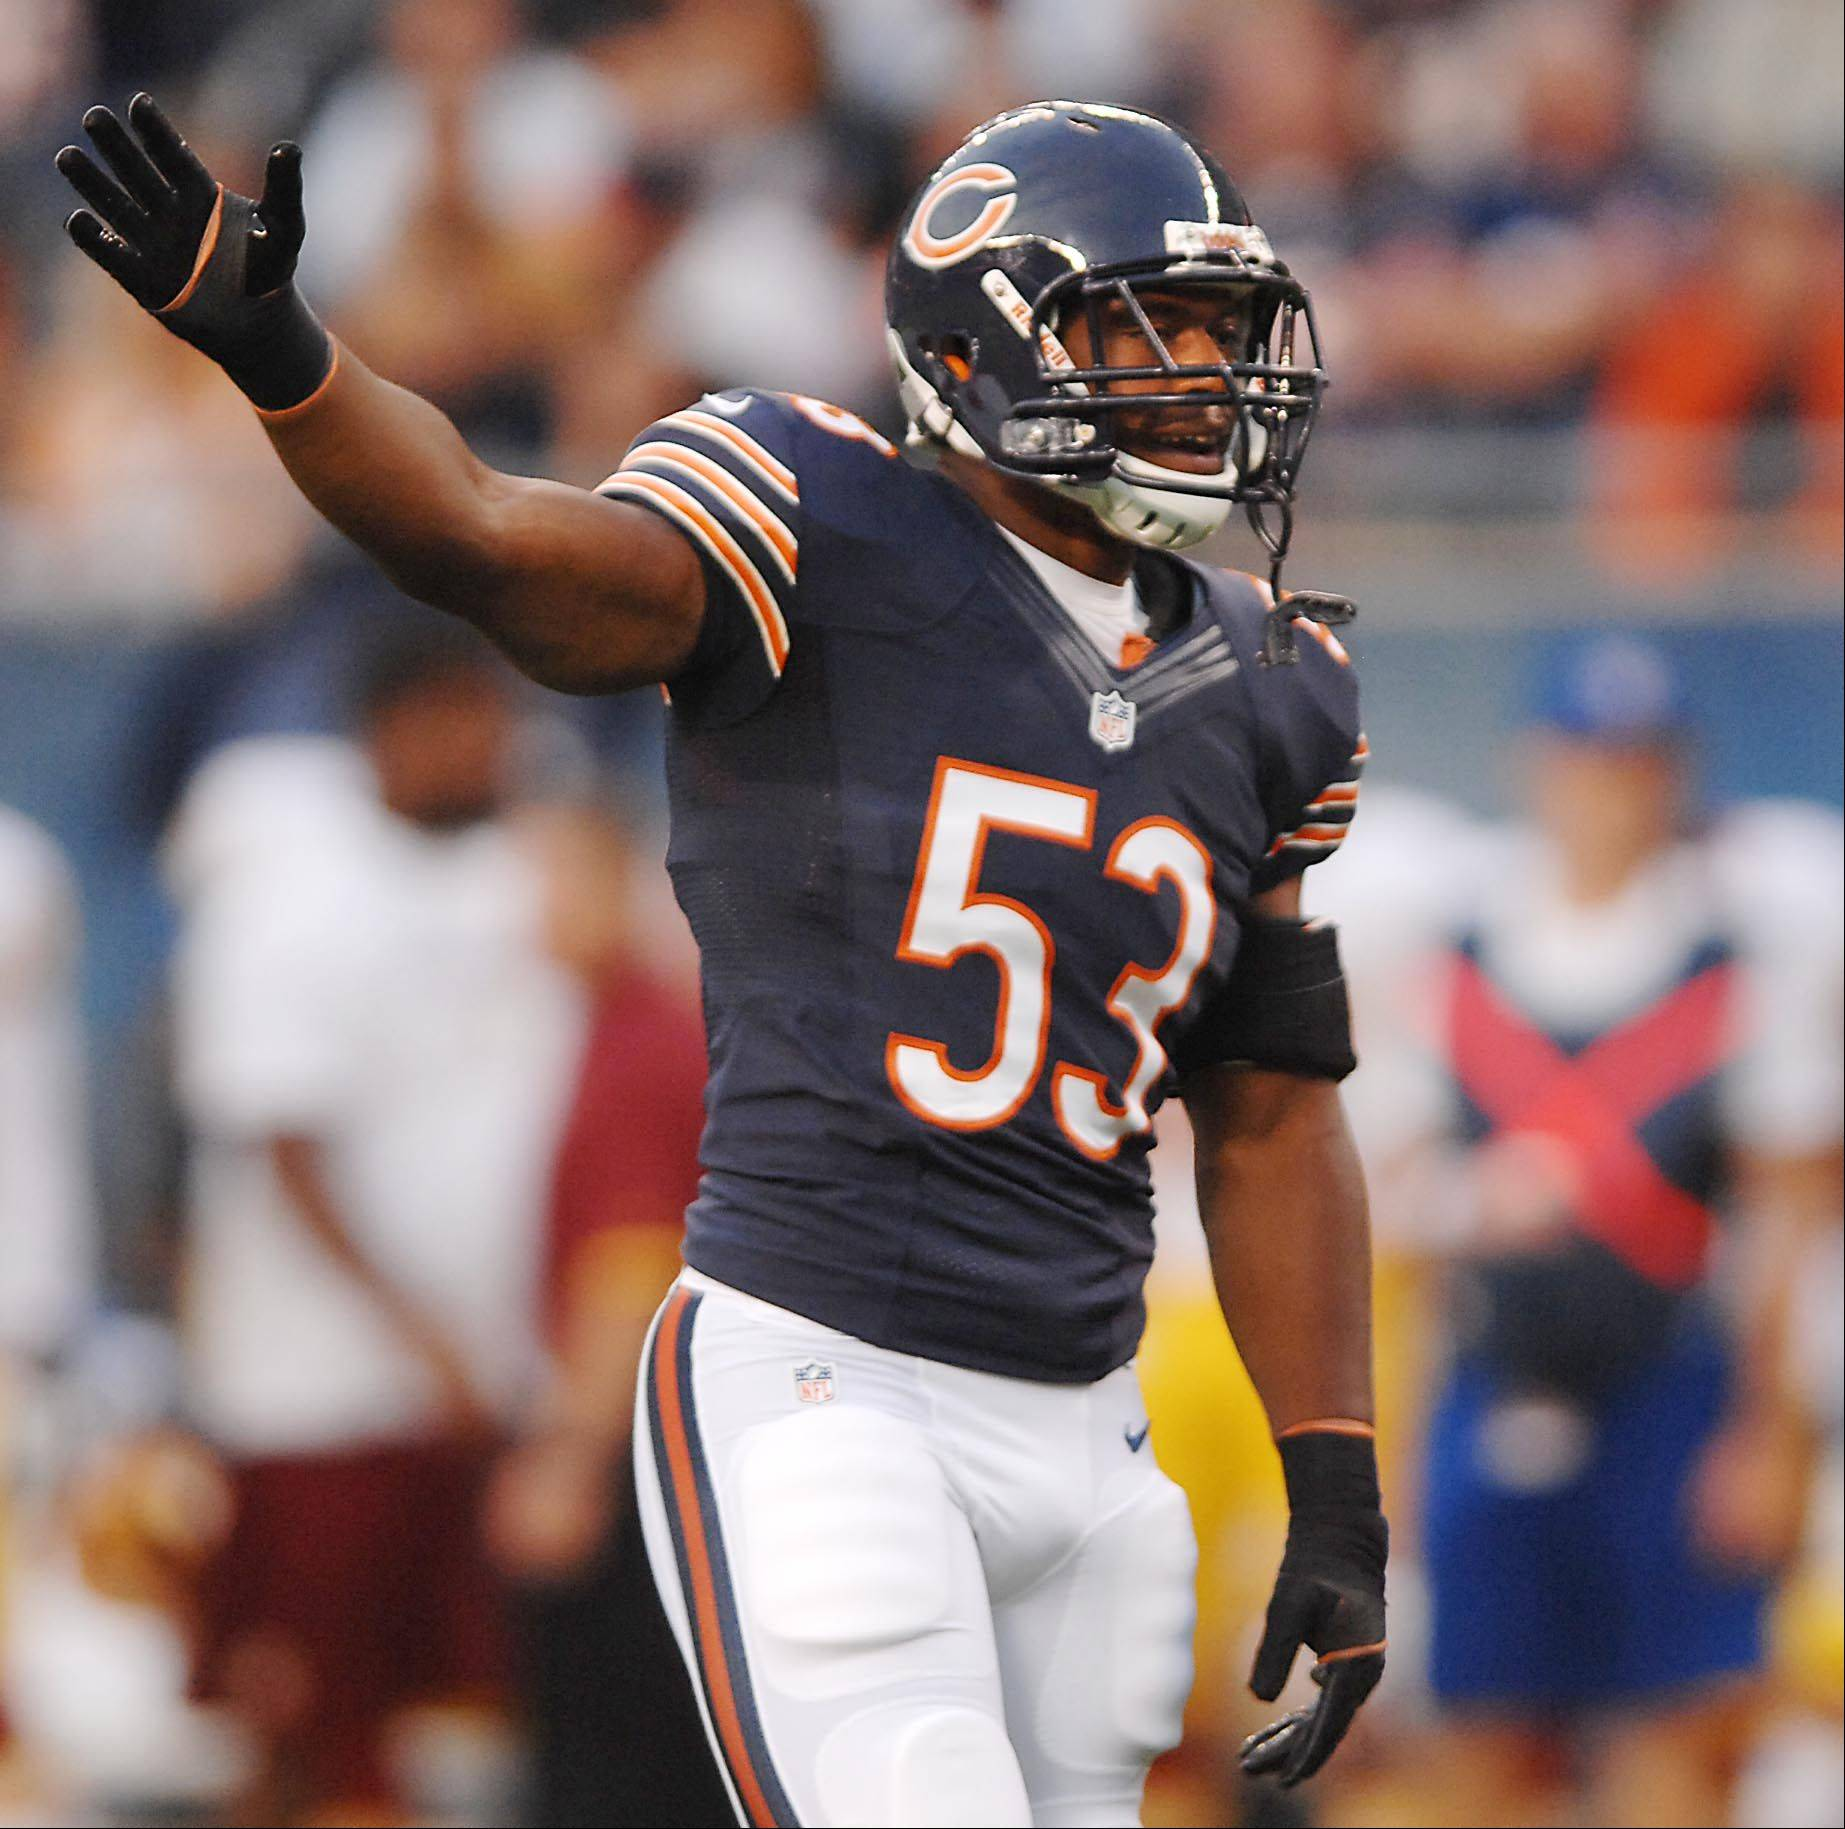 Bears linebacker Nick Roach against the Washington Redskins in the second preseason game at Soldier Field in Chicago.